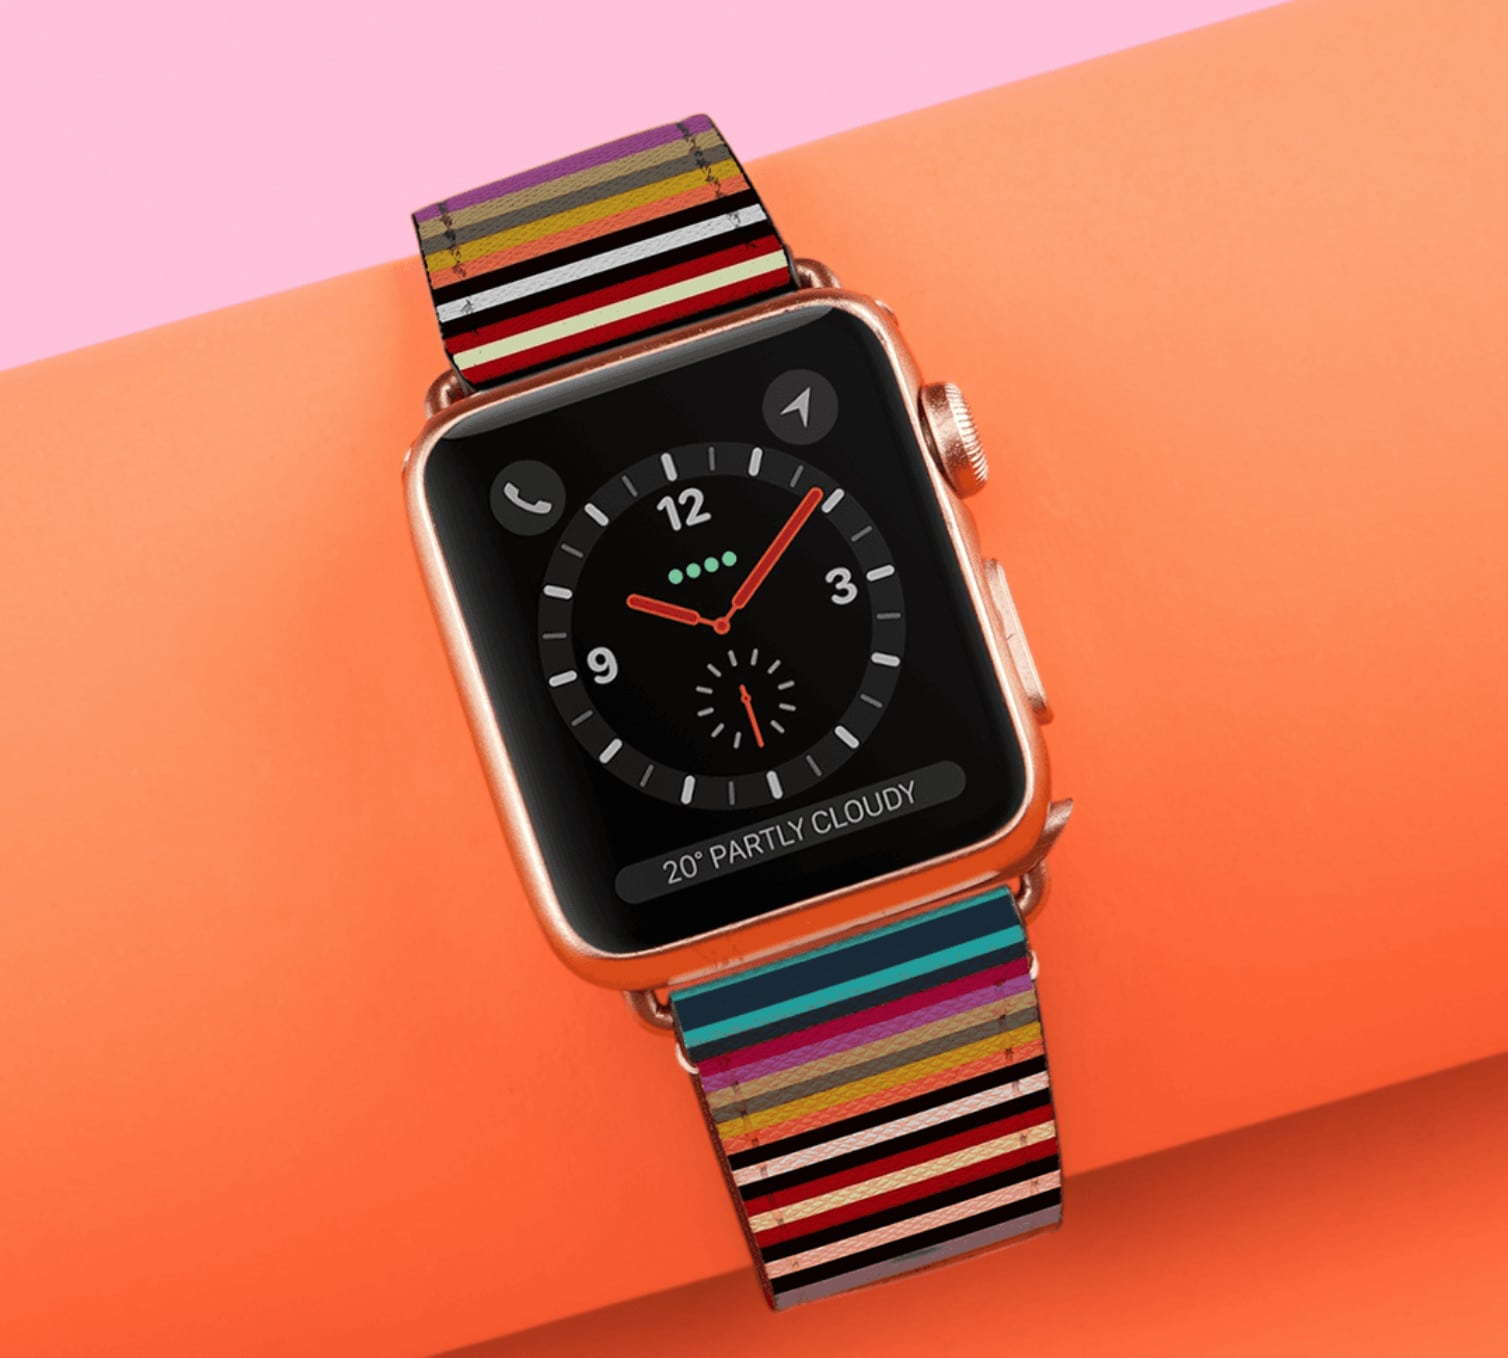 Go stripes! This saffiano leather Apple Watch band from Casetify is timeless and chic, perfect for adding flair to an everyday look.